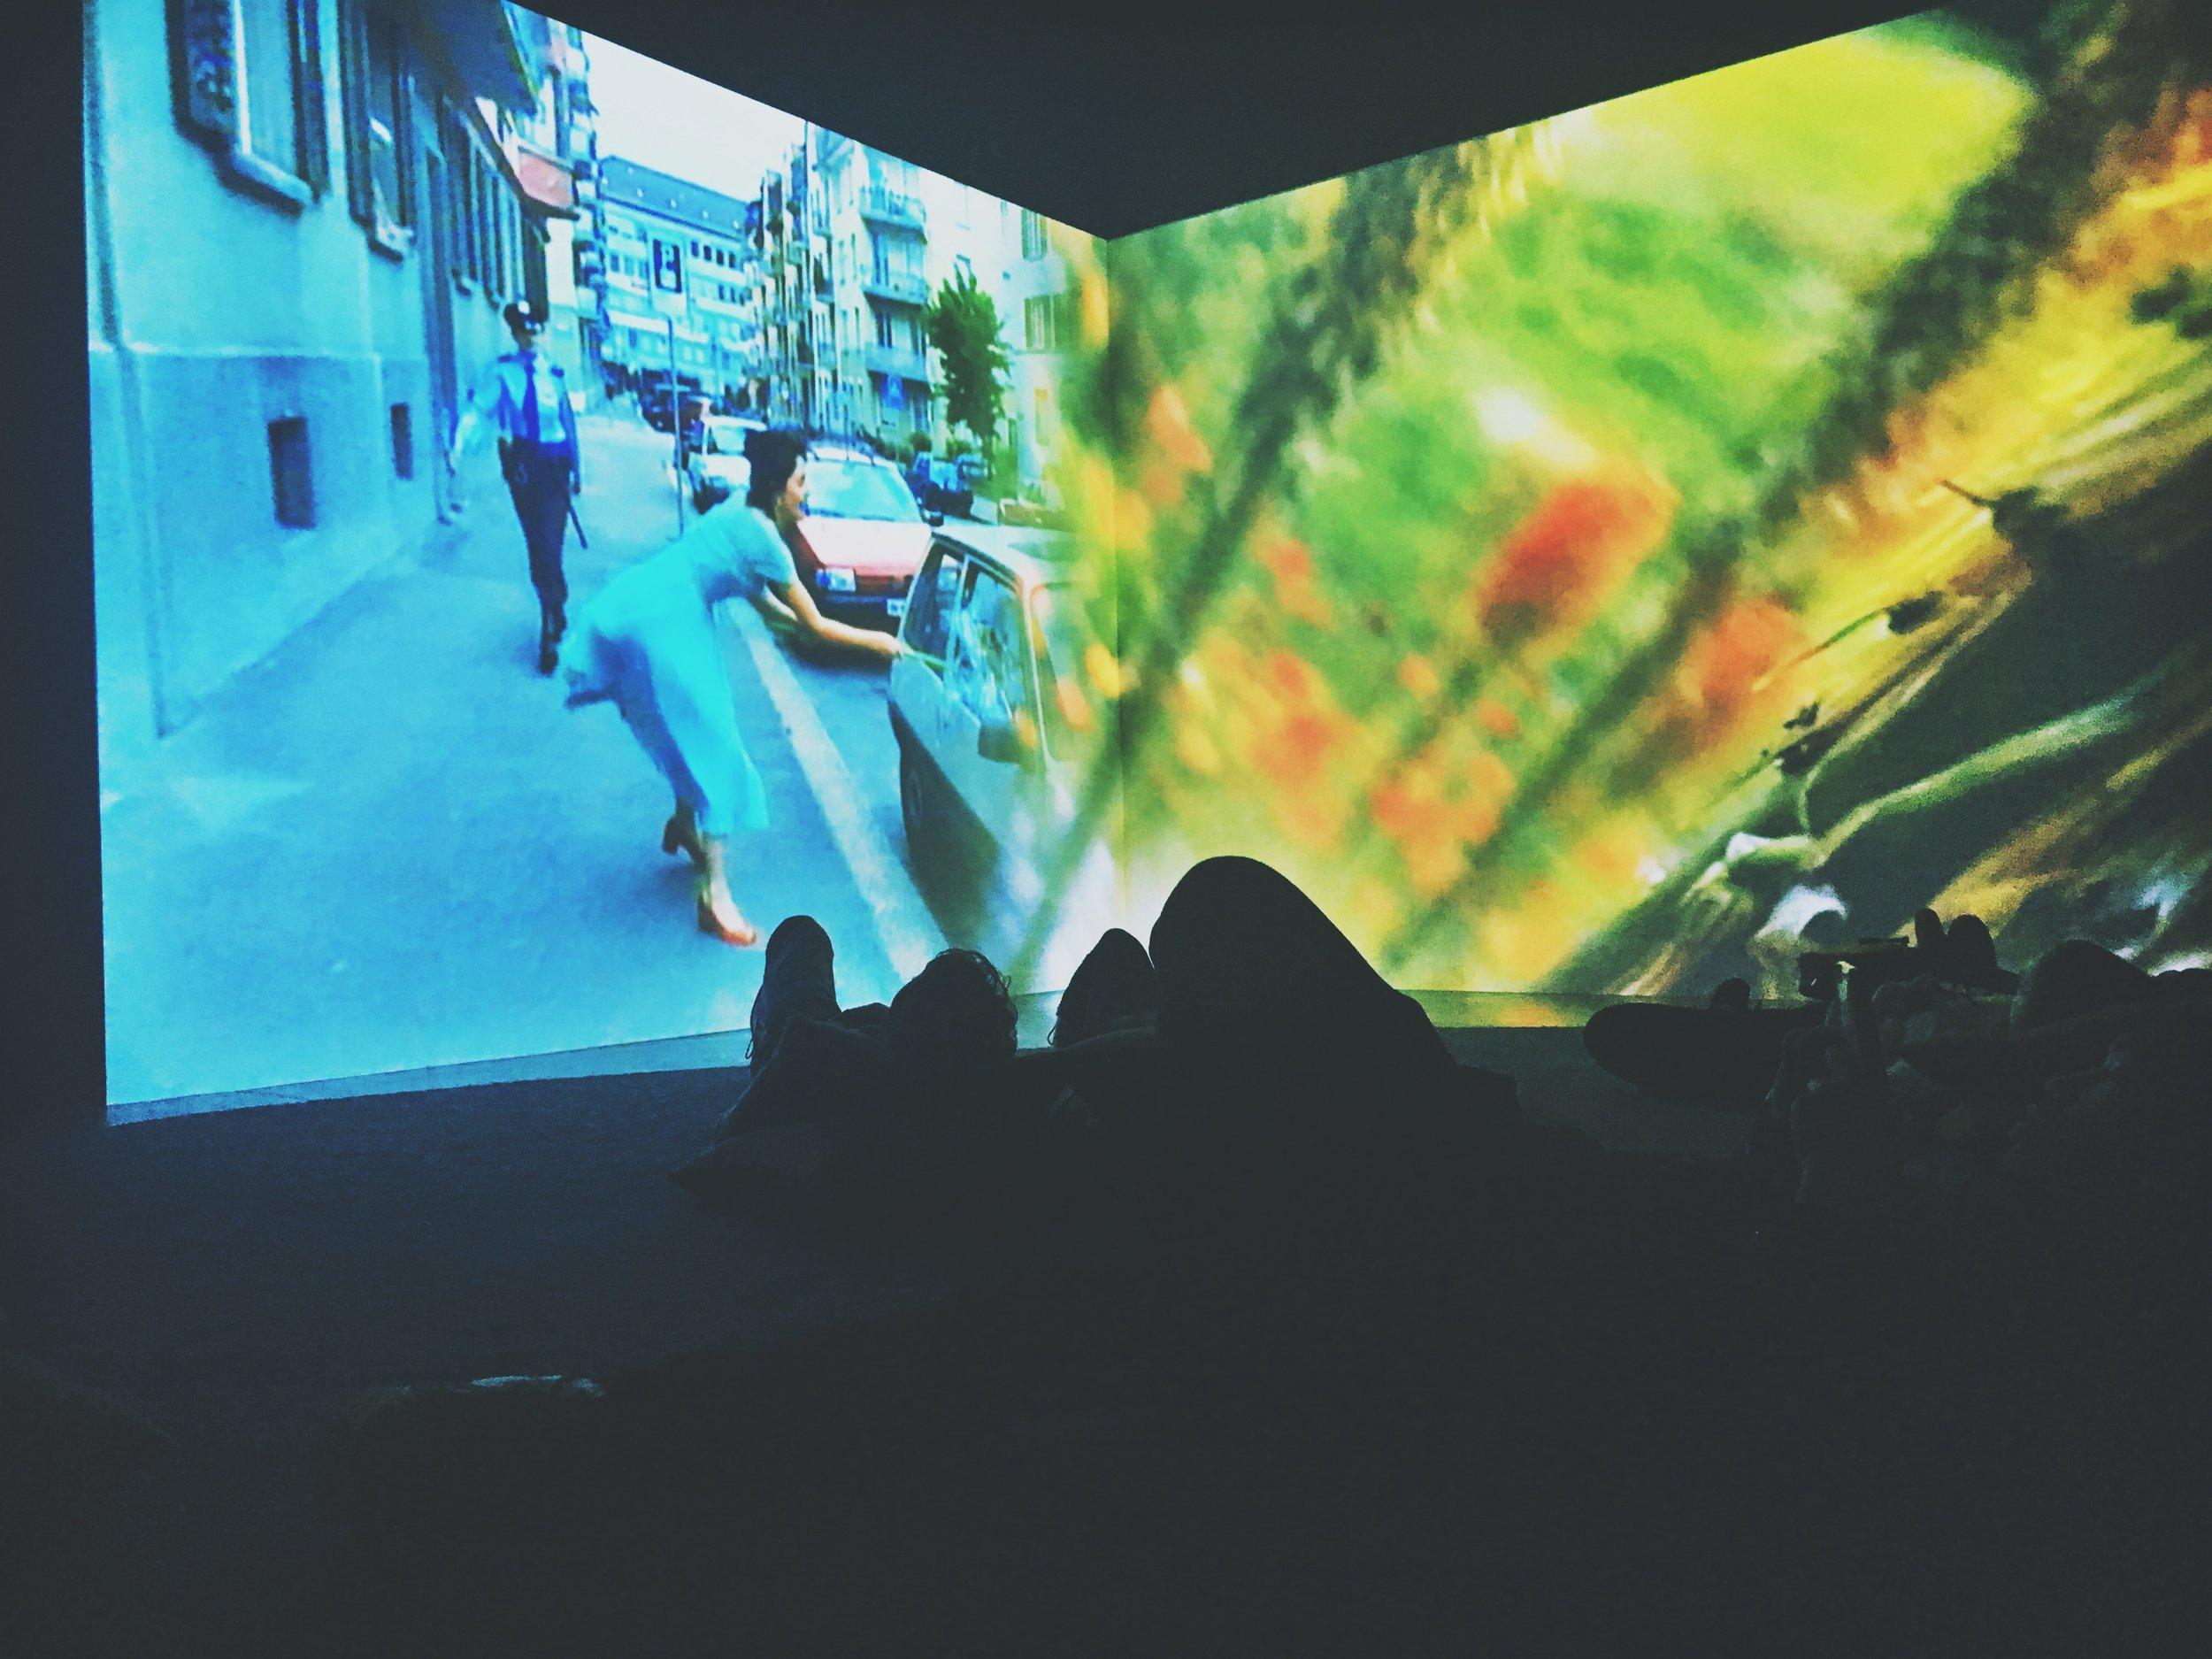 Ever is Over All , 1997, Pipilotti Rist. Photo by Jonathan Morgan